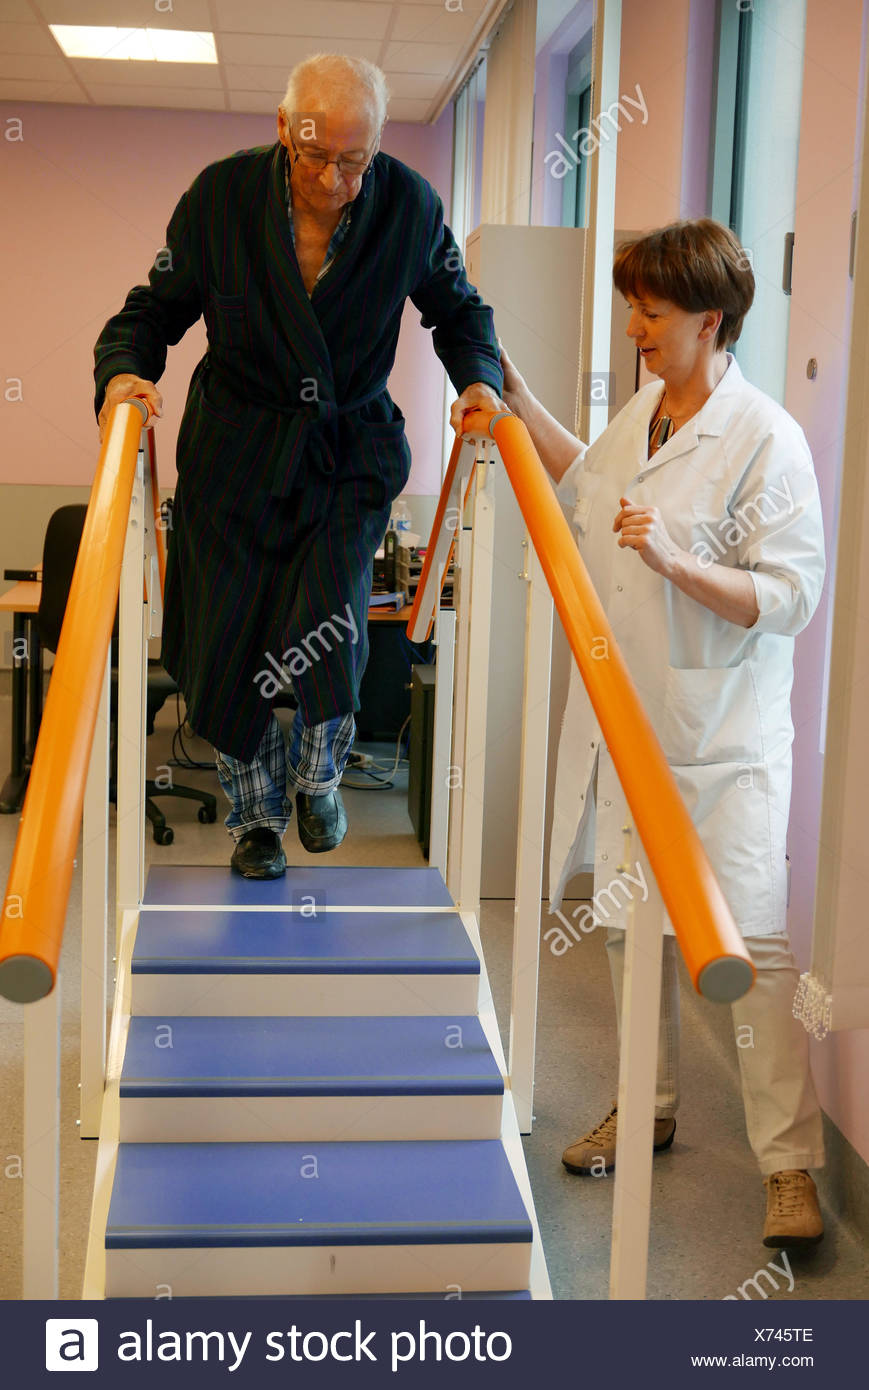 Physical Therapist Assisting Senior Man In Climbing Steps At Nursing Home - Stock Image